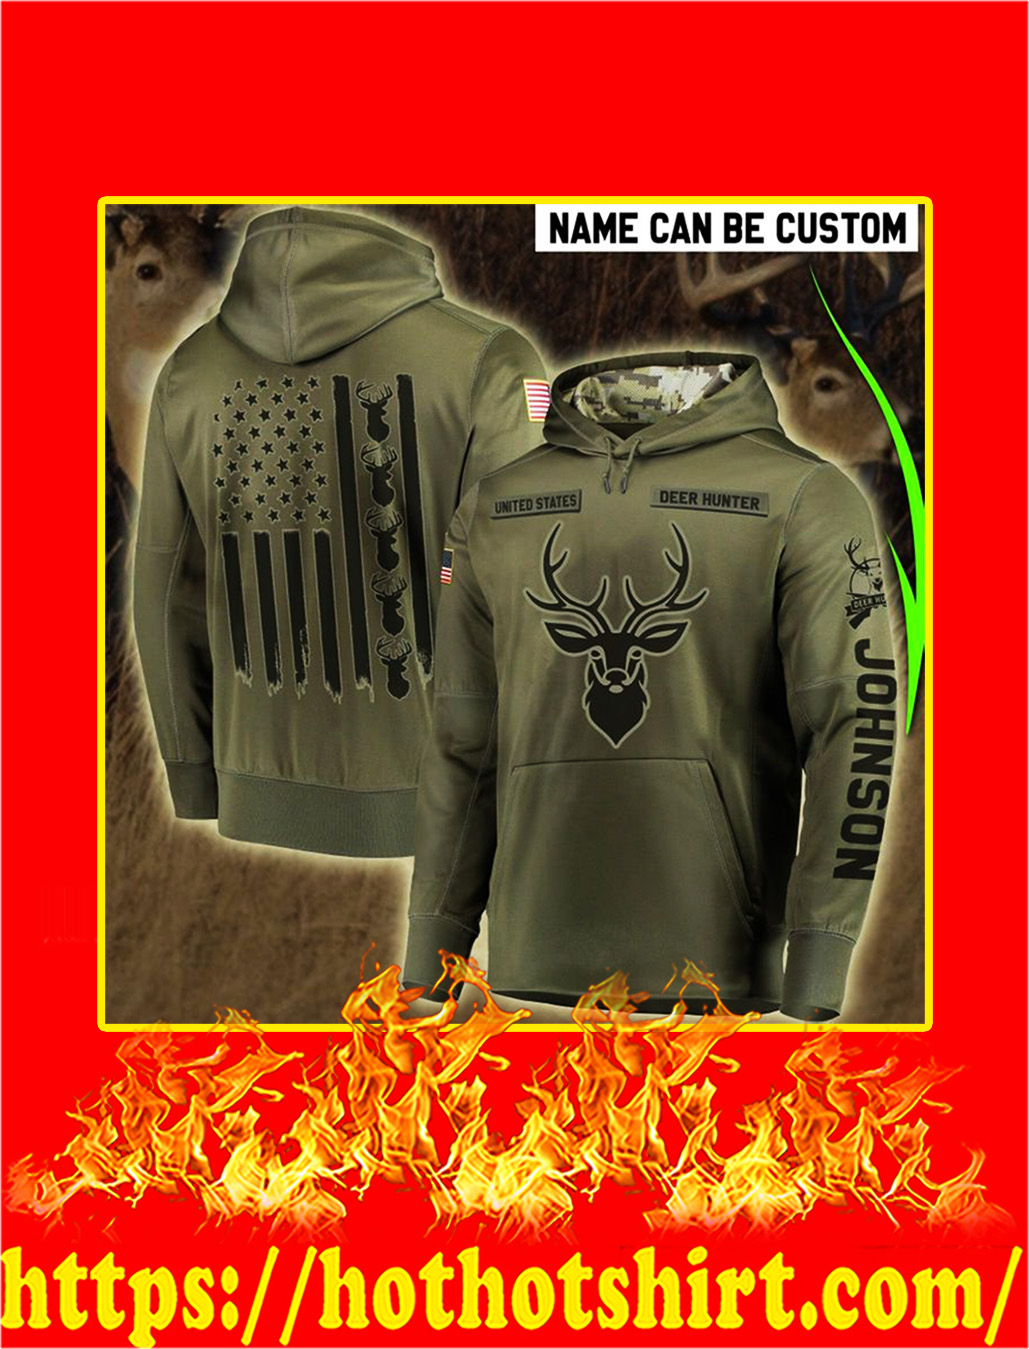 Hunting Personalize Custom Name 3D Hoodie - M